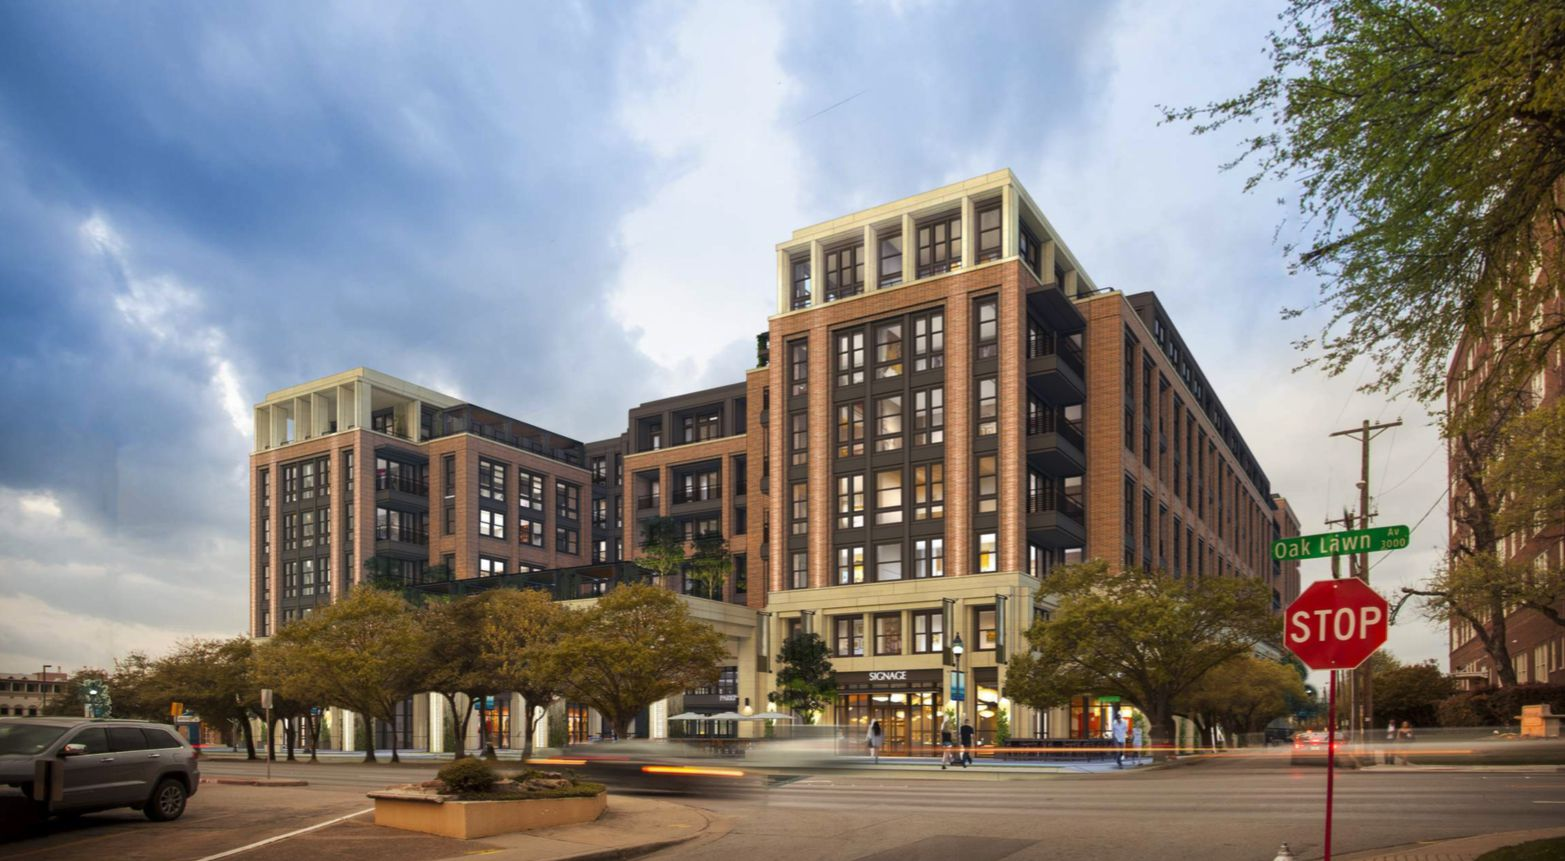 The retail and residential building is planned on Oak Lawn Avenue.